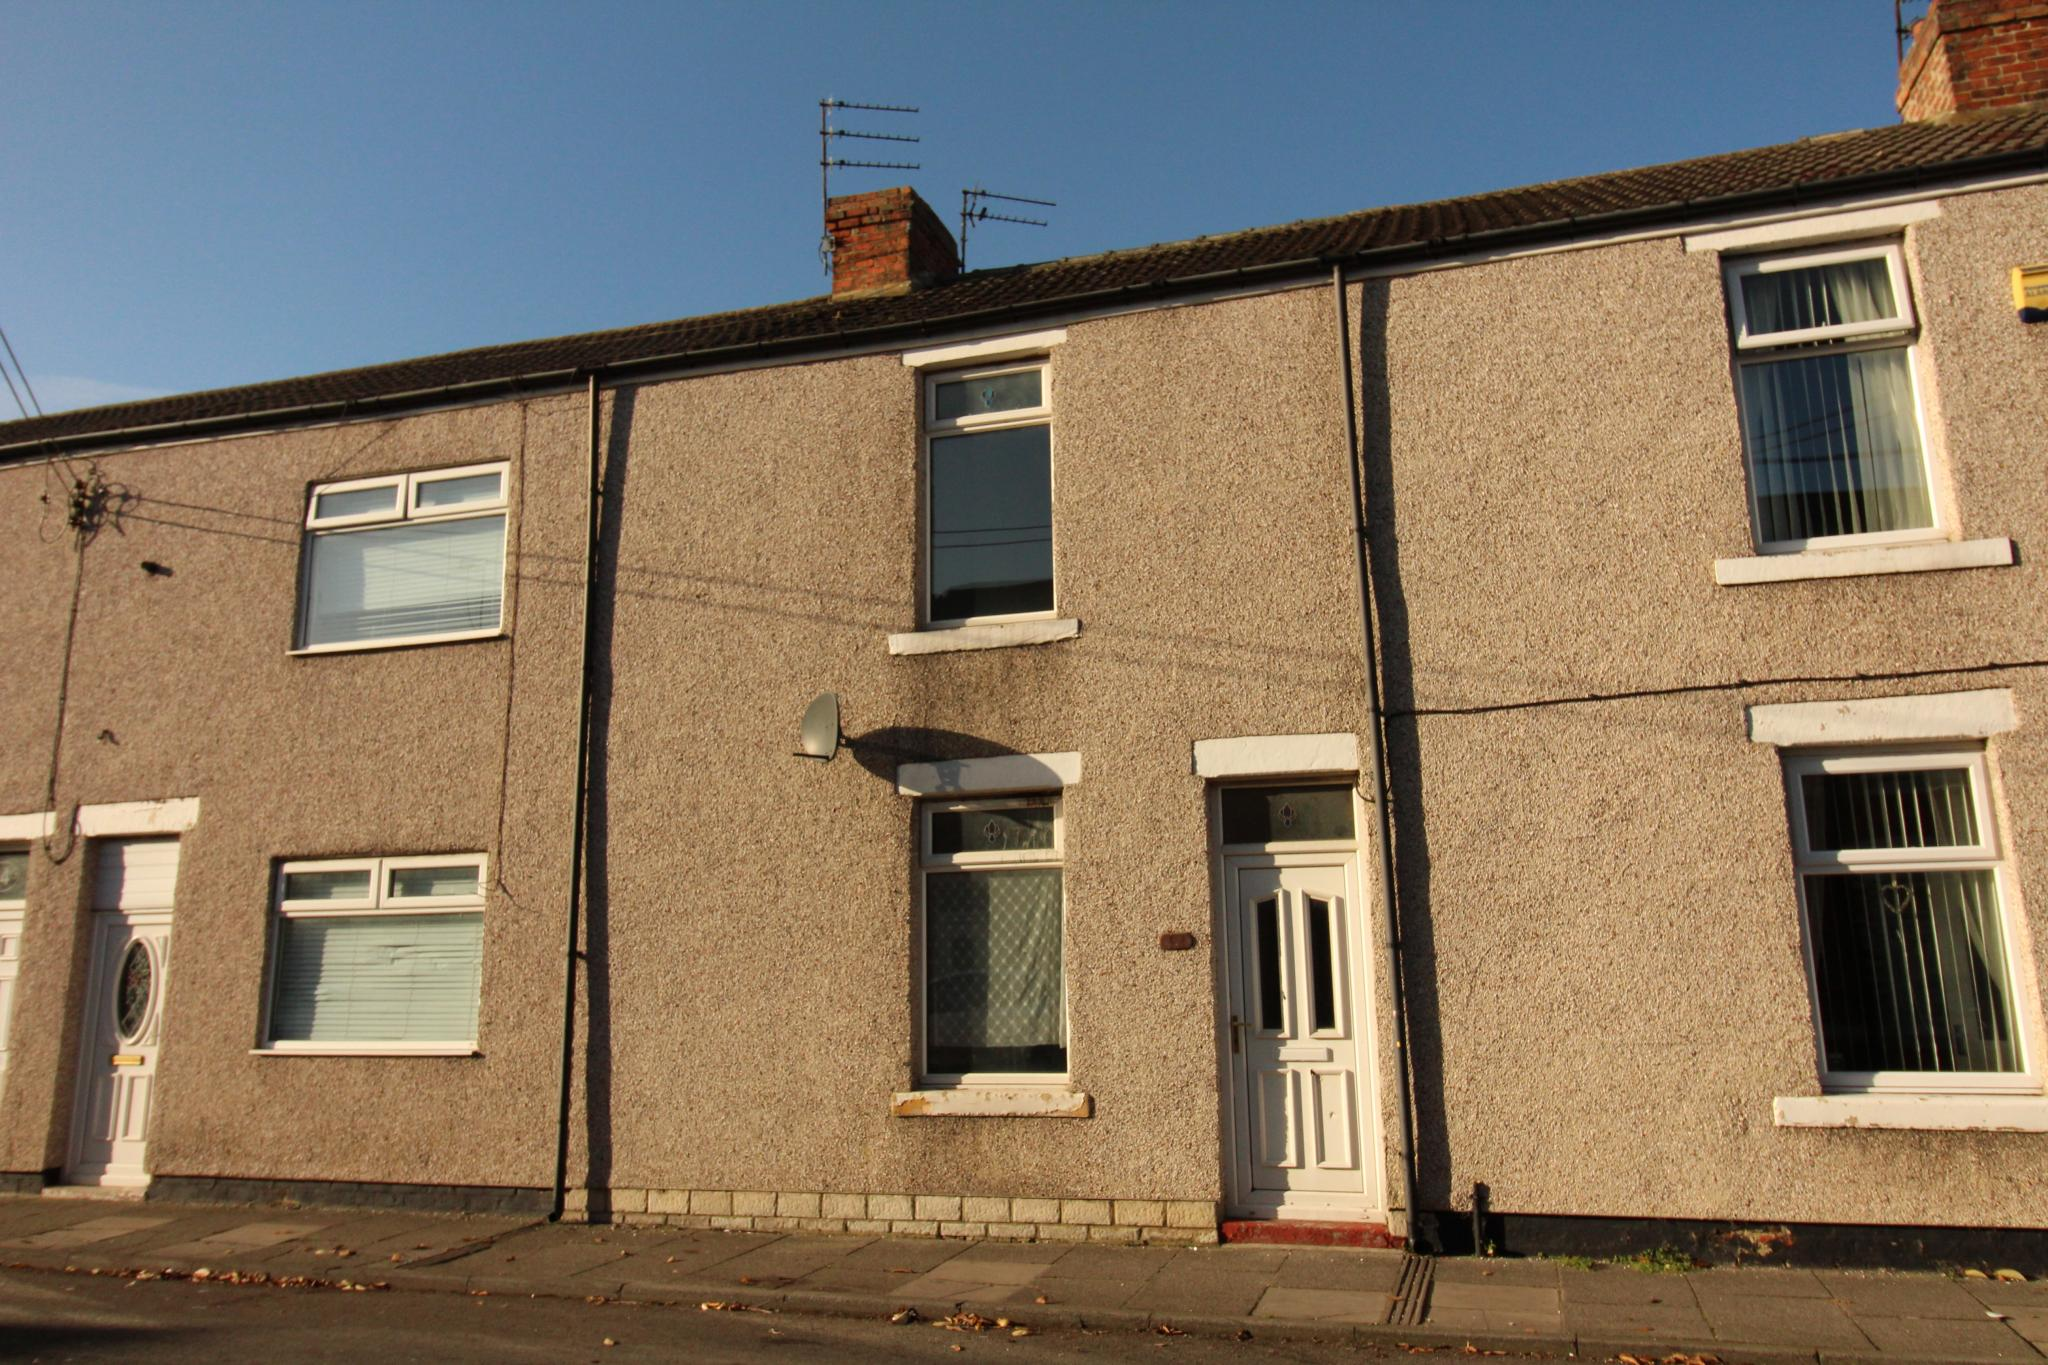 2 Bedroom Mid Terraced House For Sale - Front Exterior